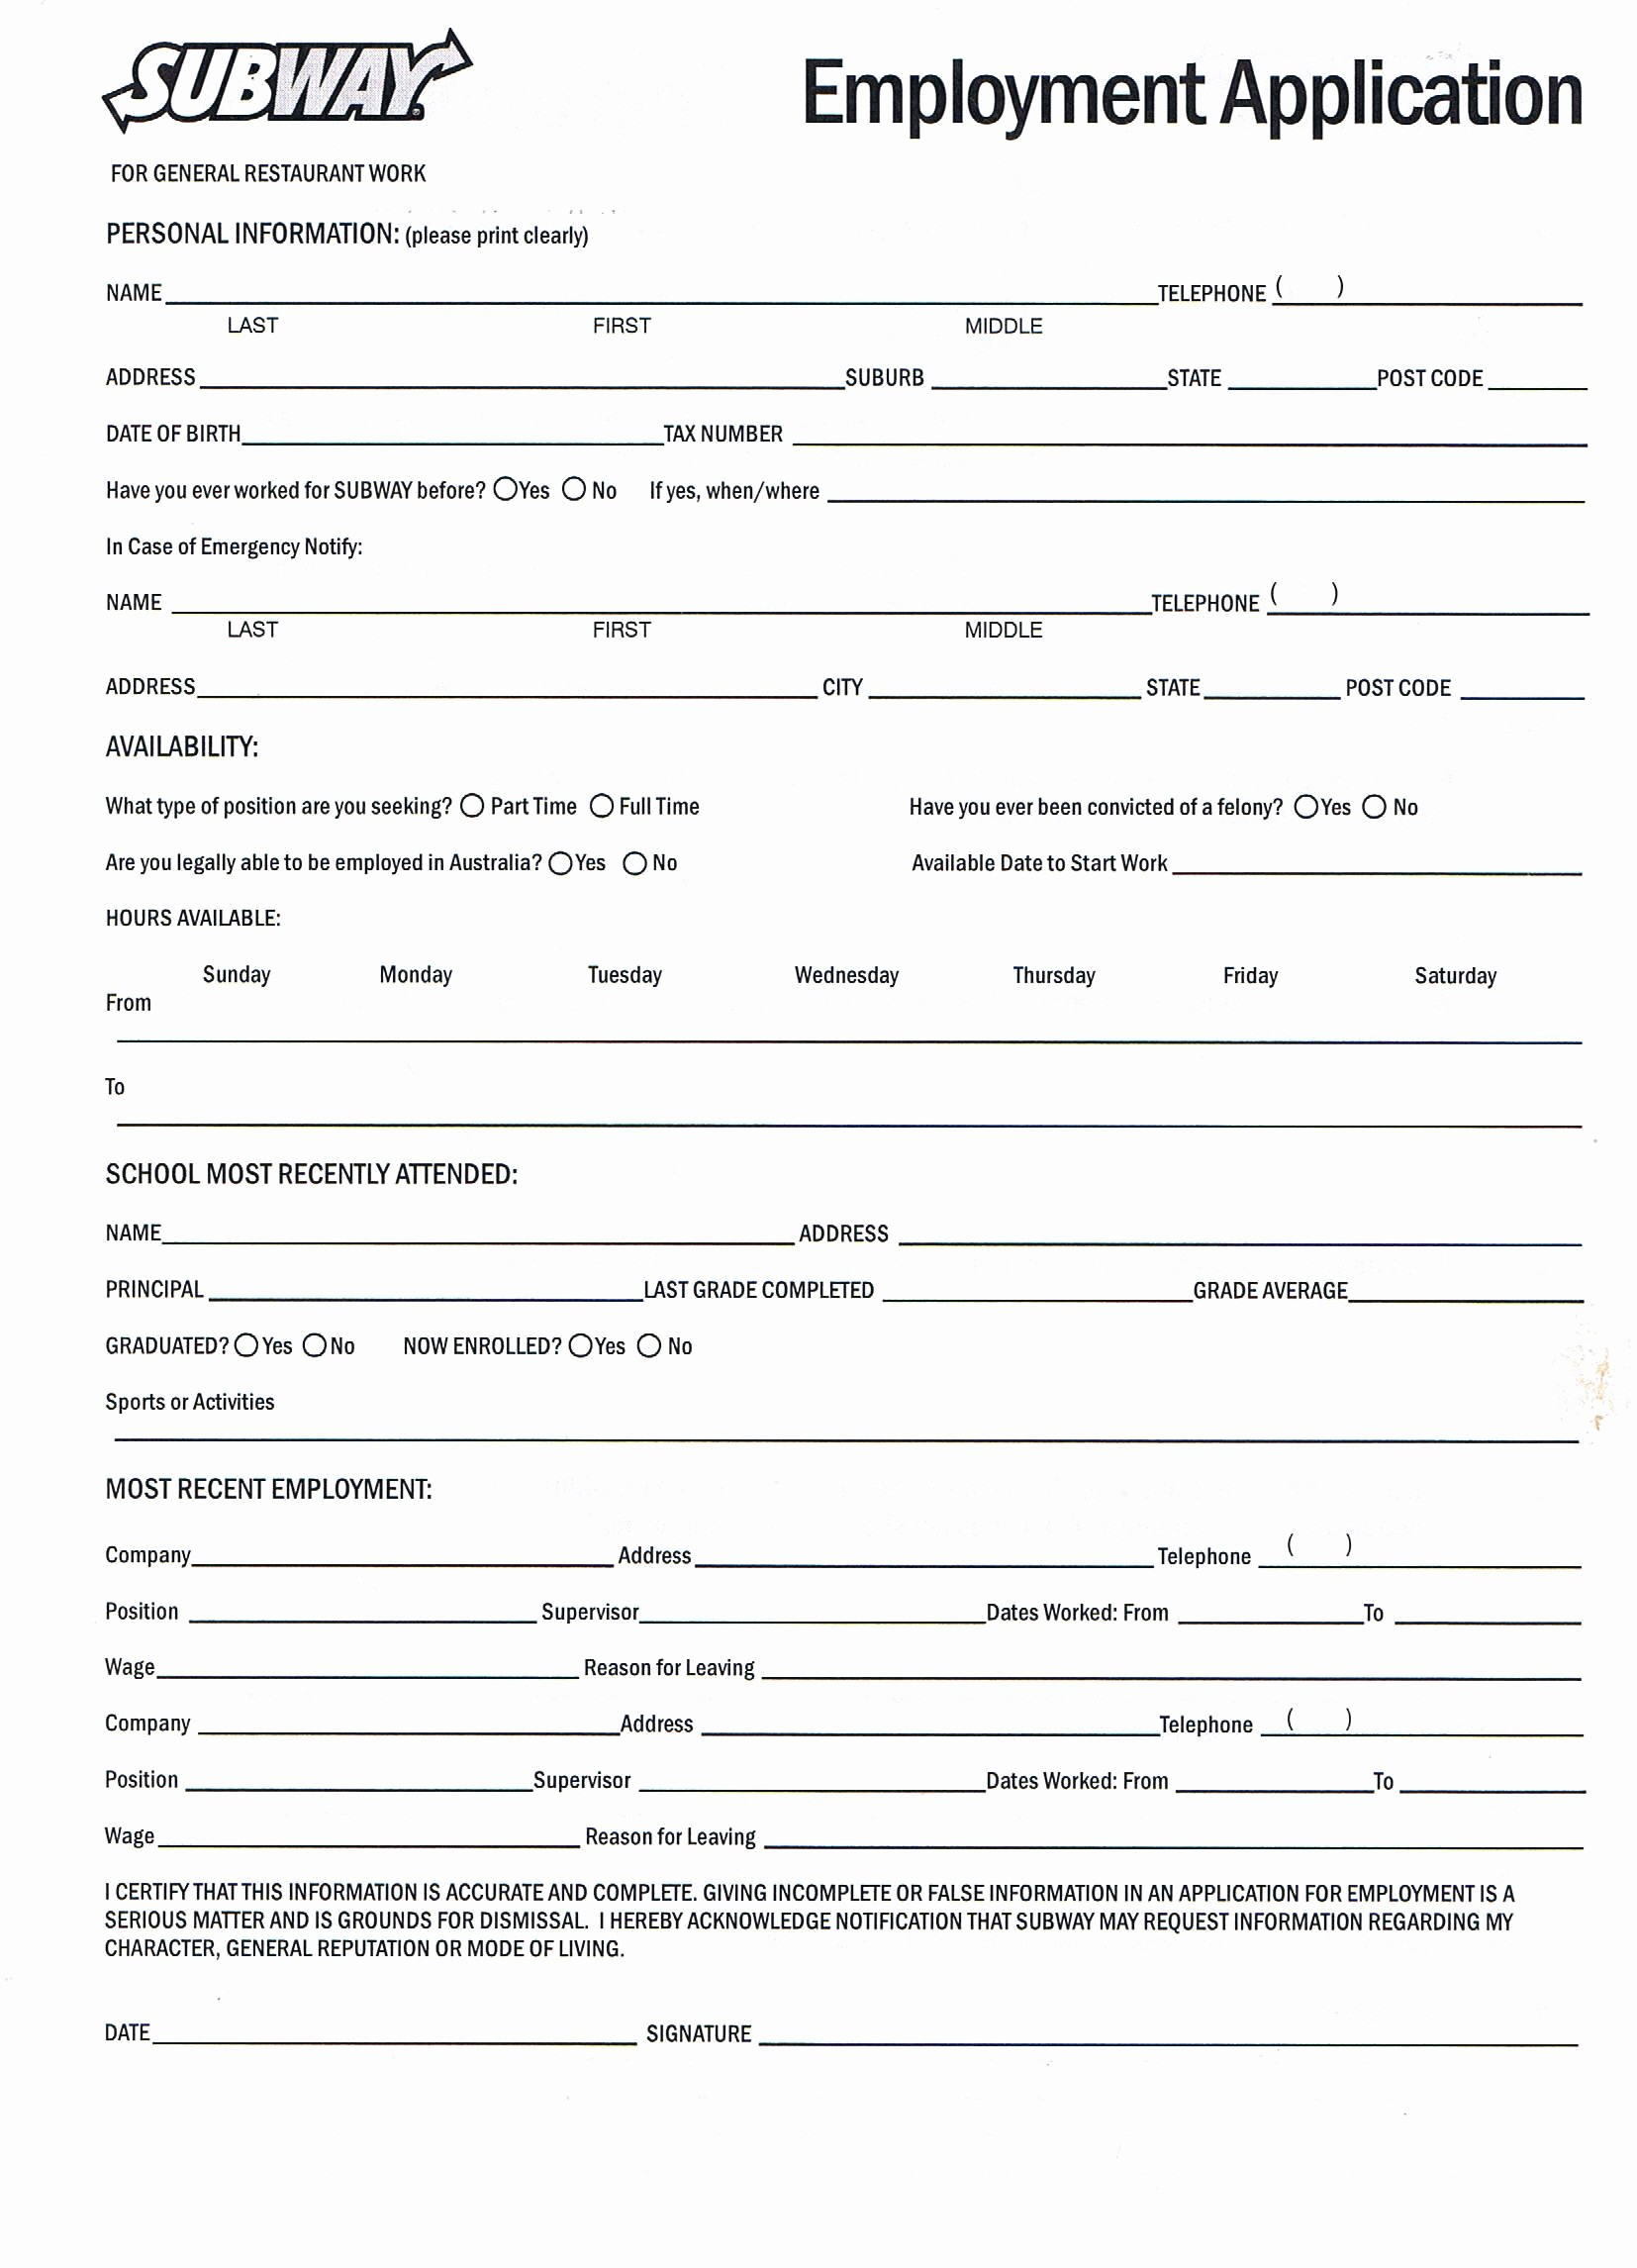 Free Blank Employment Application form New Printable Employment Application for Subway